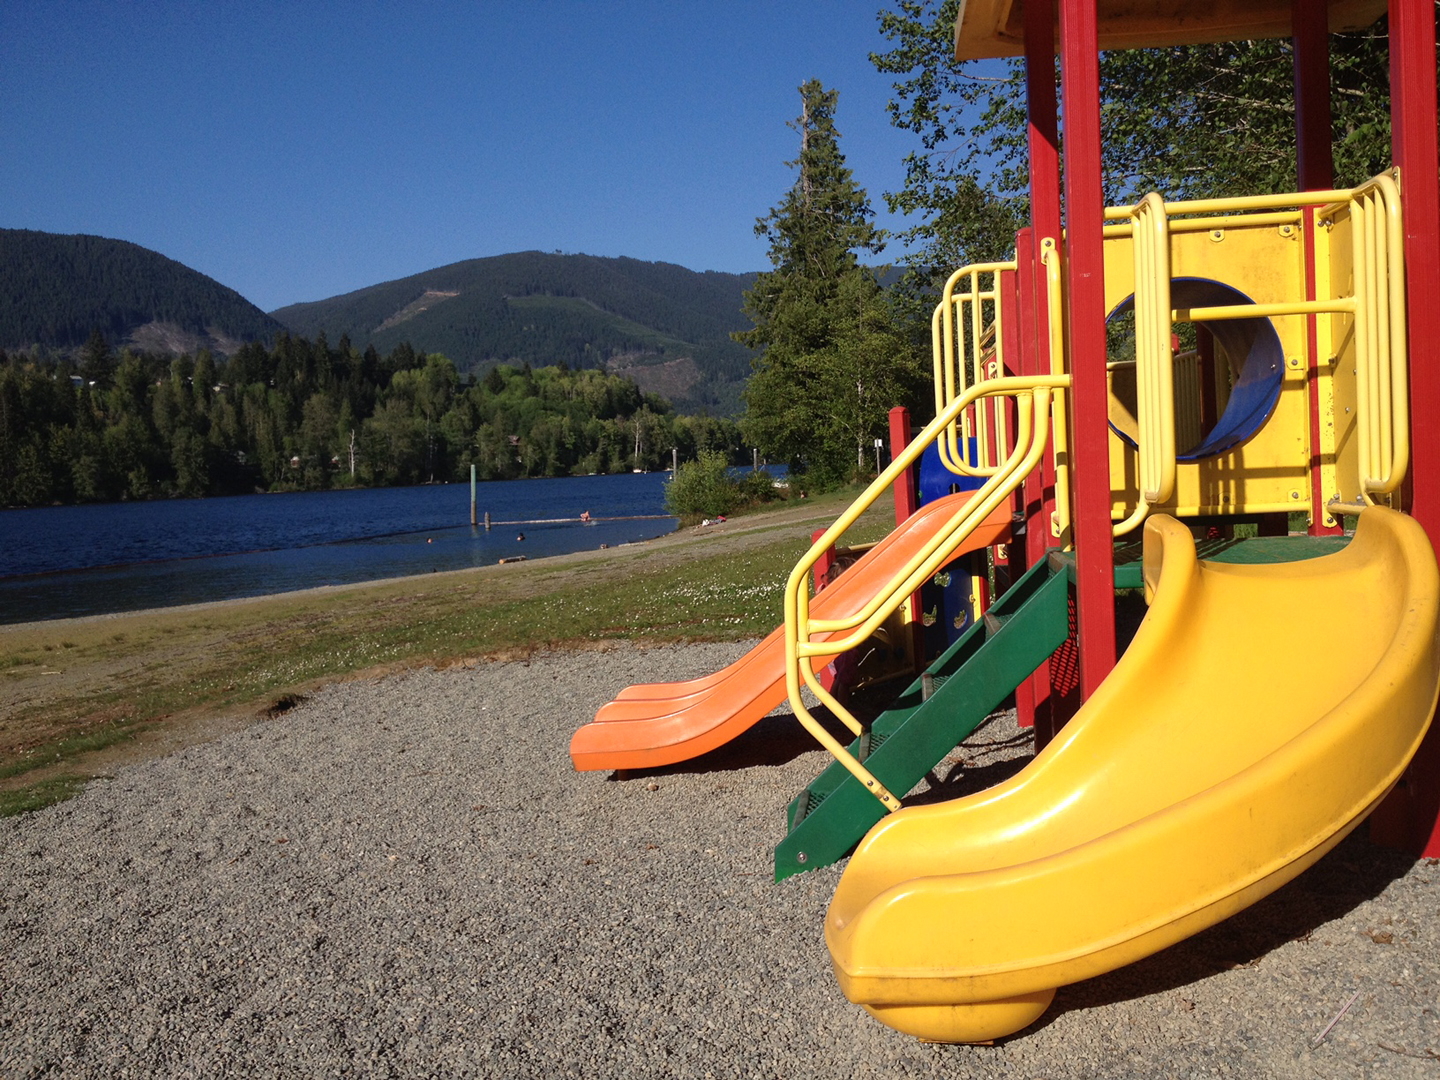 playground lakeview park cowichan lake swimming beach